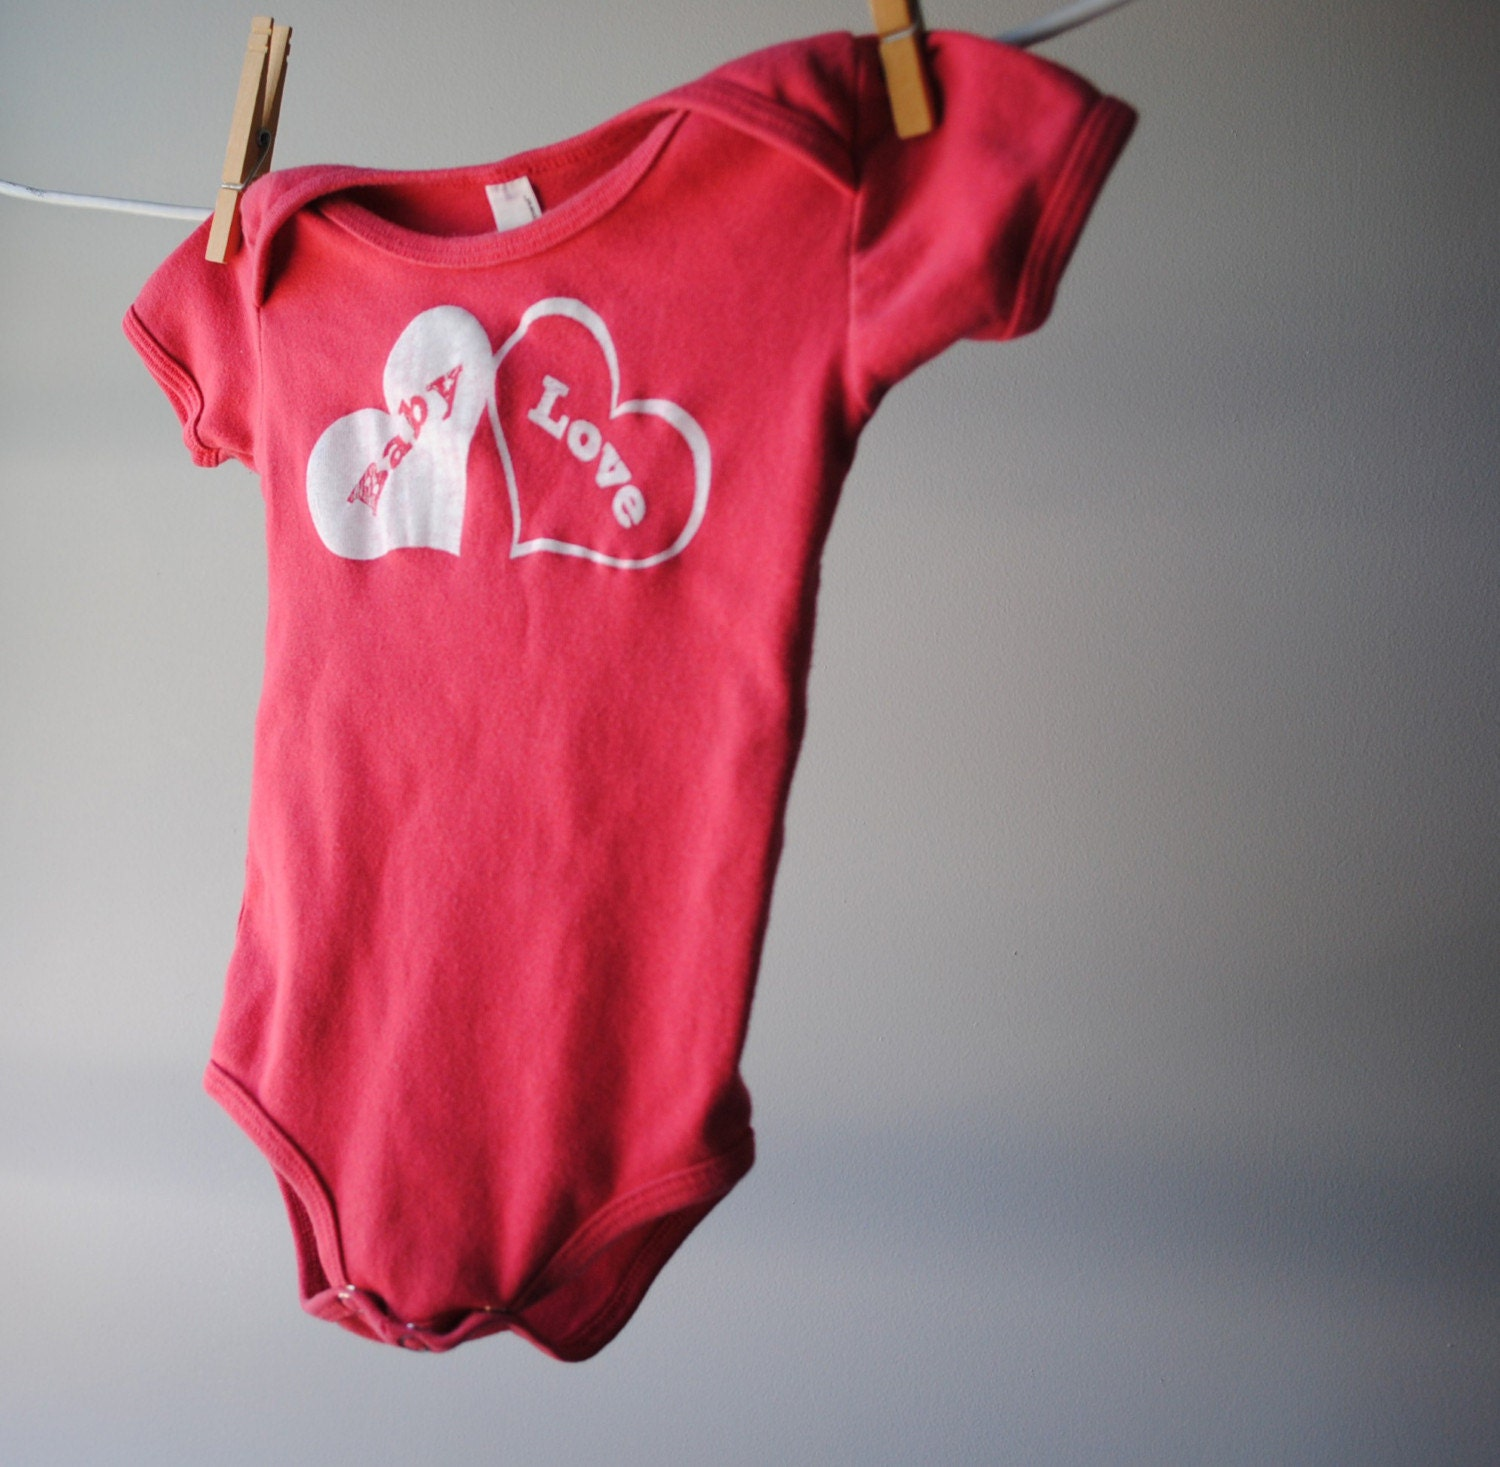 Baby Love Bodysuit - Strawberry Reddish Pink with White Ink, sized 6 to 12 months